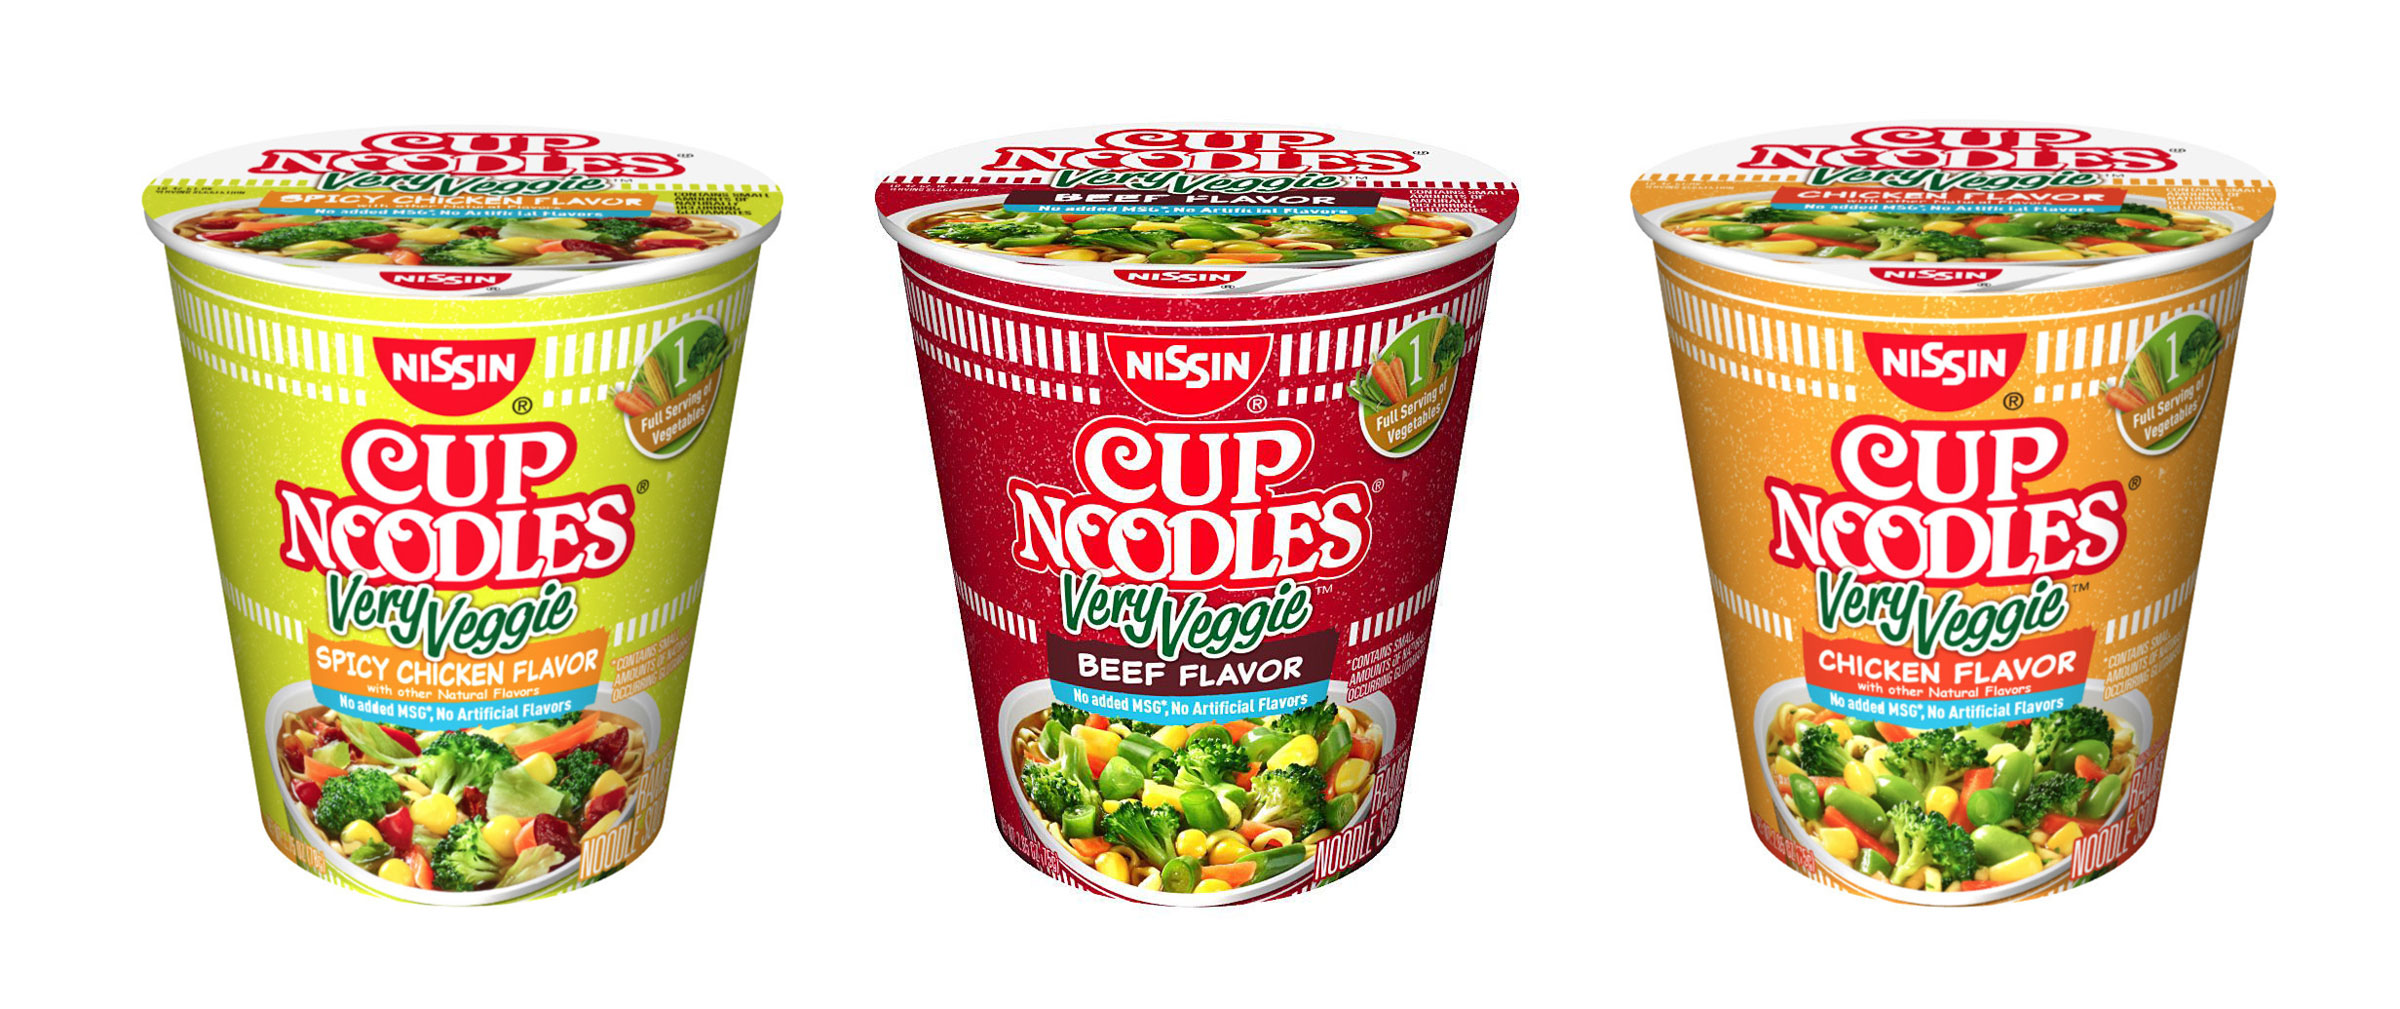 Cup Noodles:Very Veggie